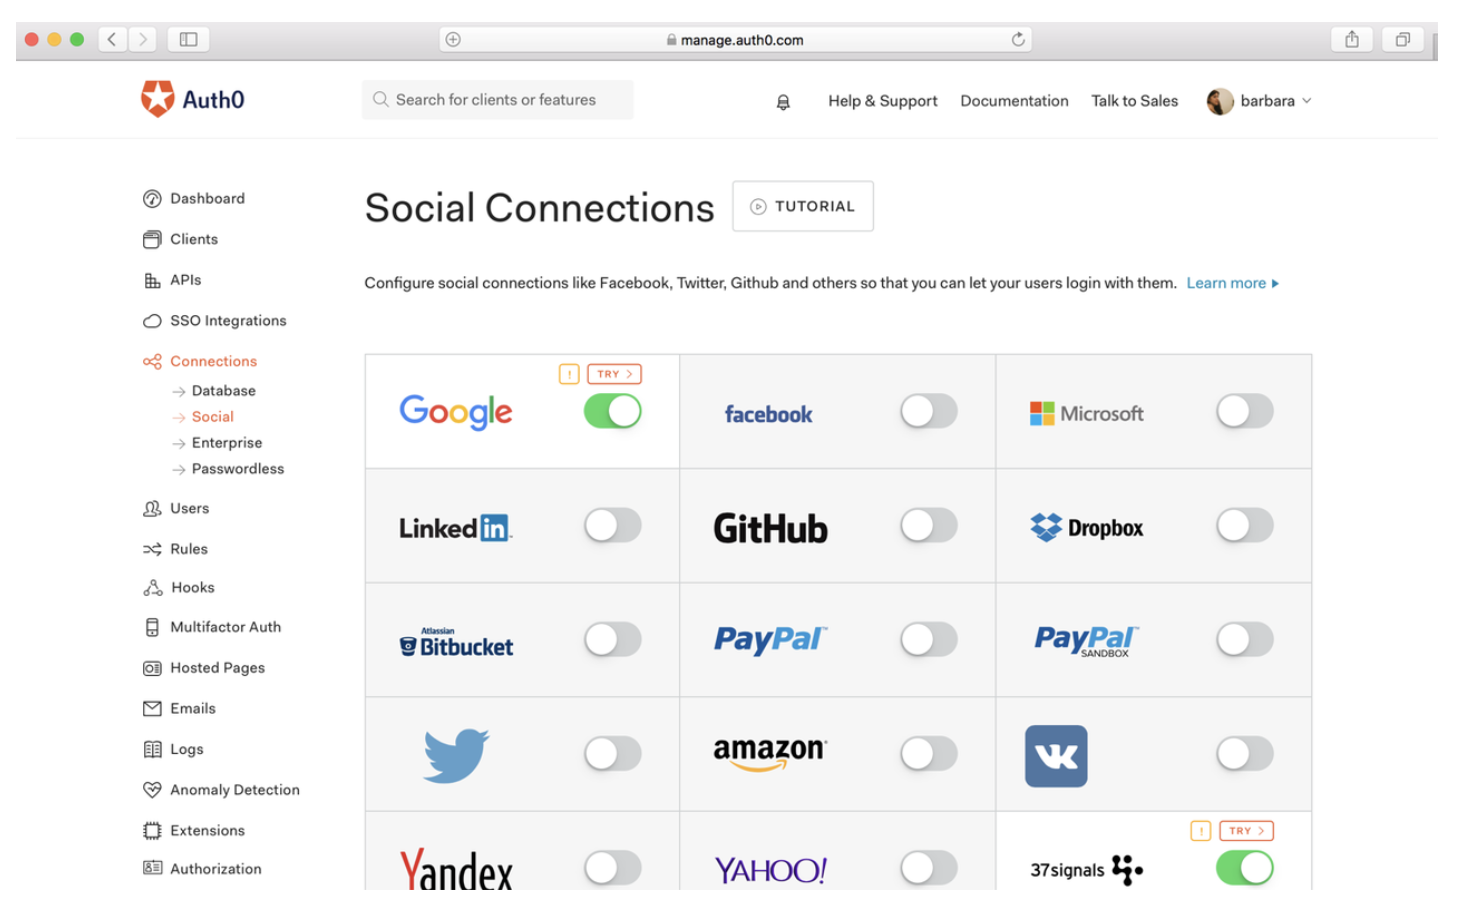 Auth0 Social Connections social login providers